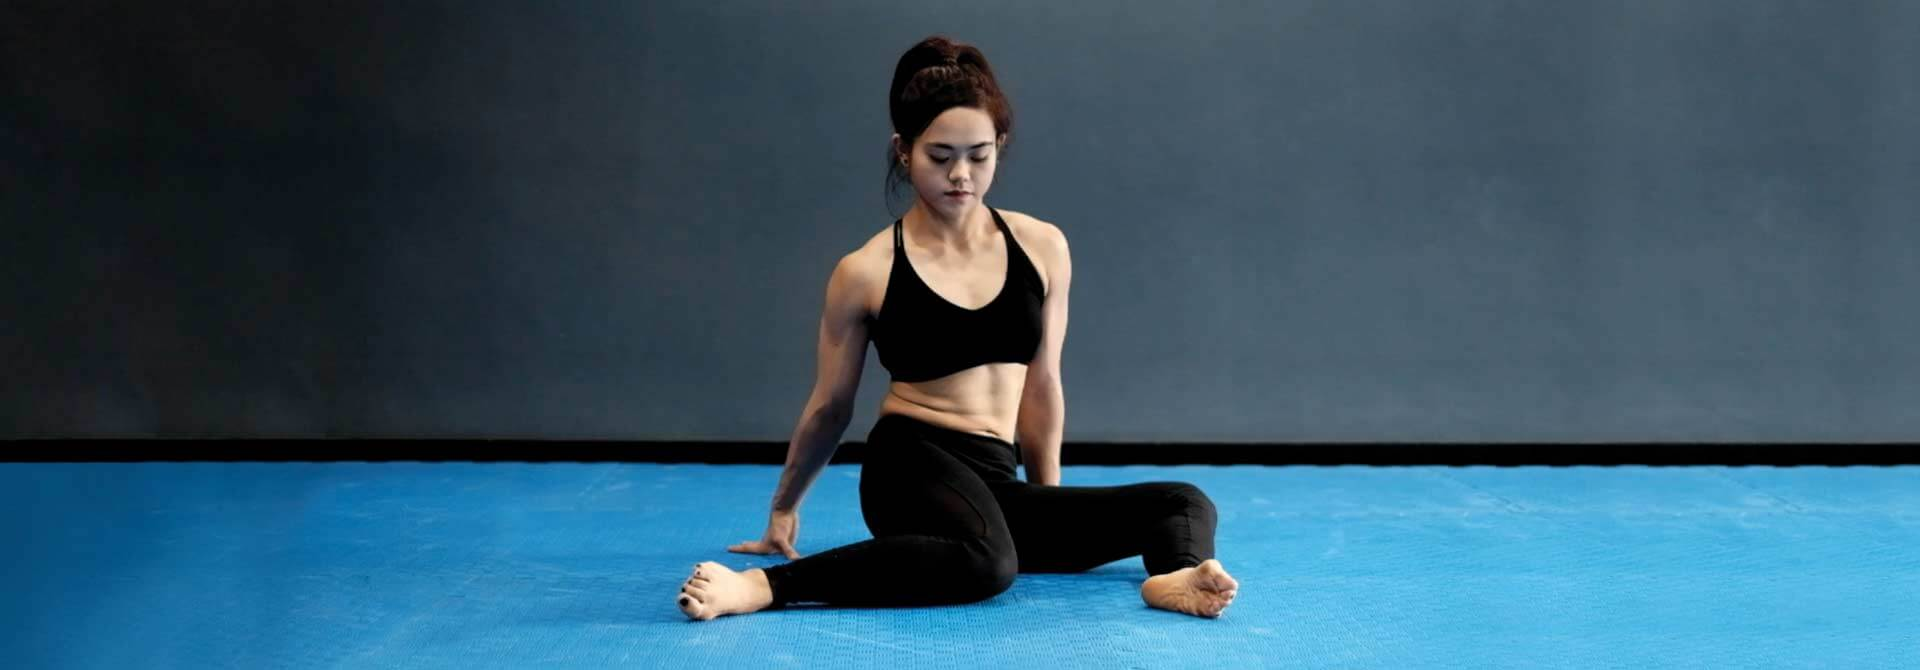 GymnasticBodies female athlete demonstrates hip swivels, an exercise that gently loosens the hip joints.